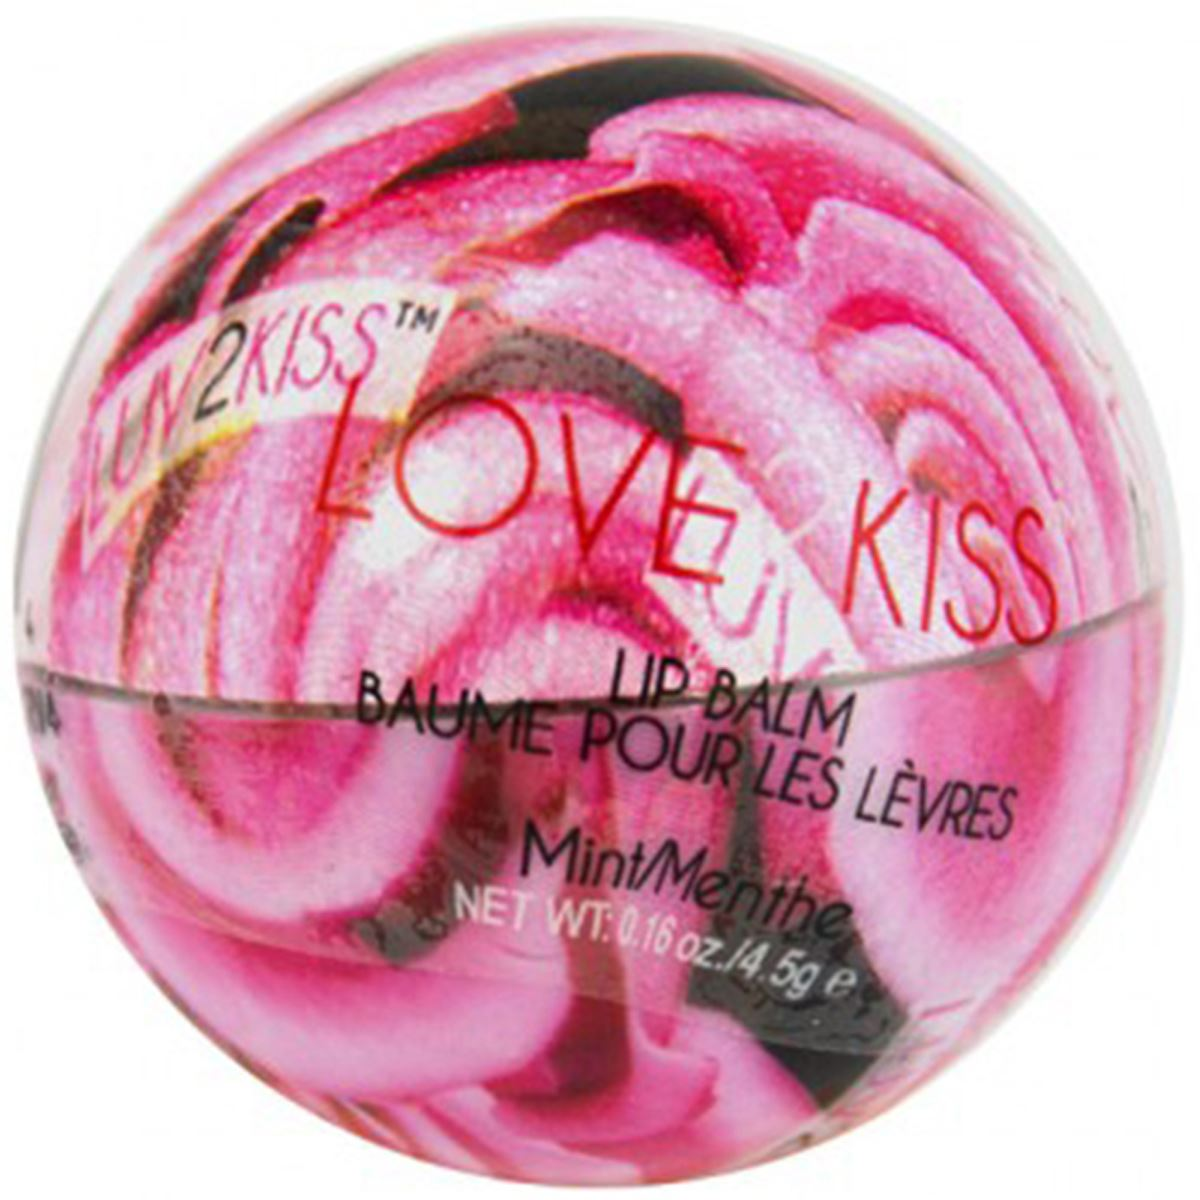 Luv2kiss lip balm- mint  - Sanborns